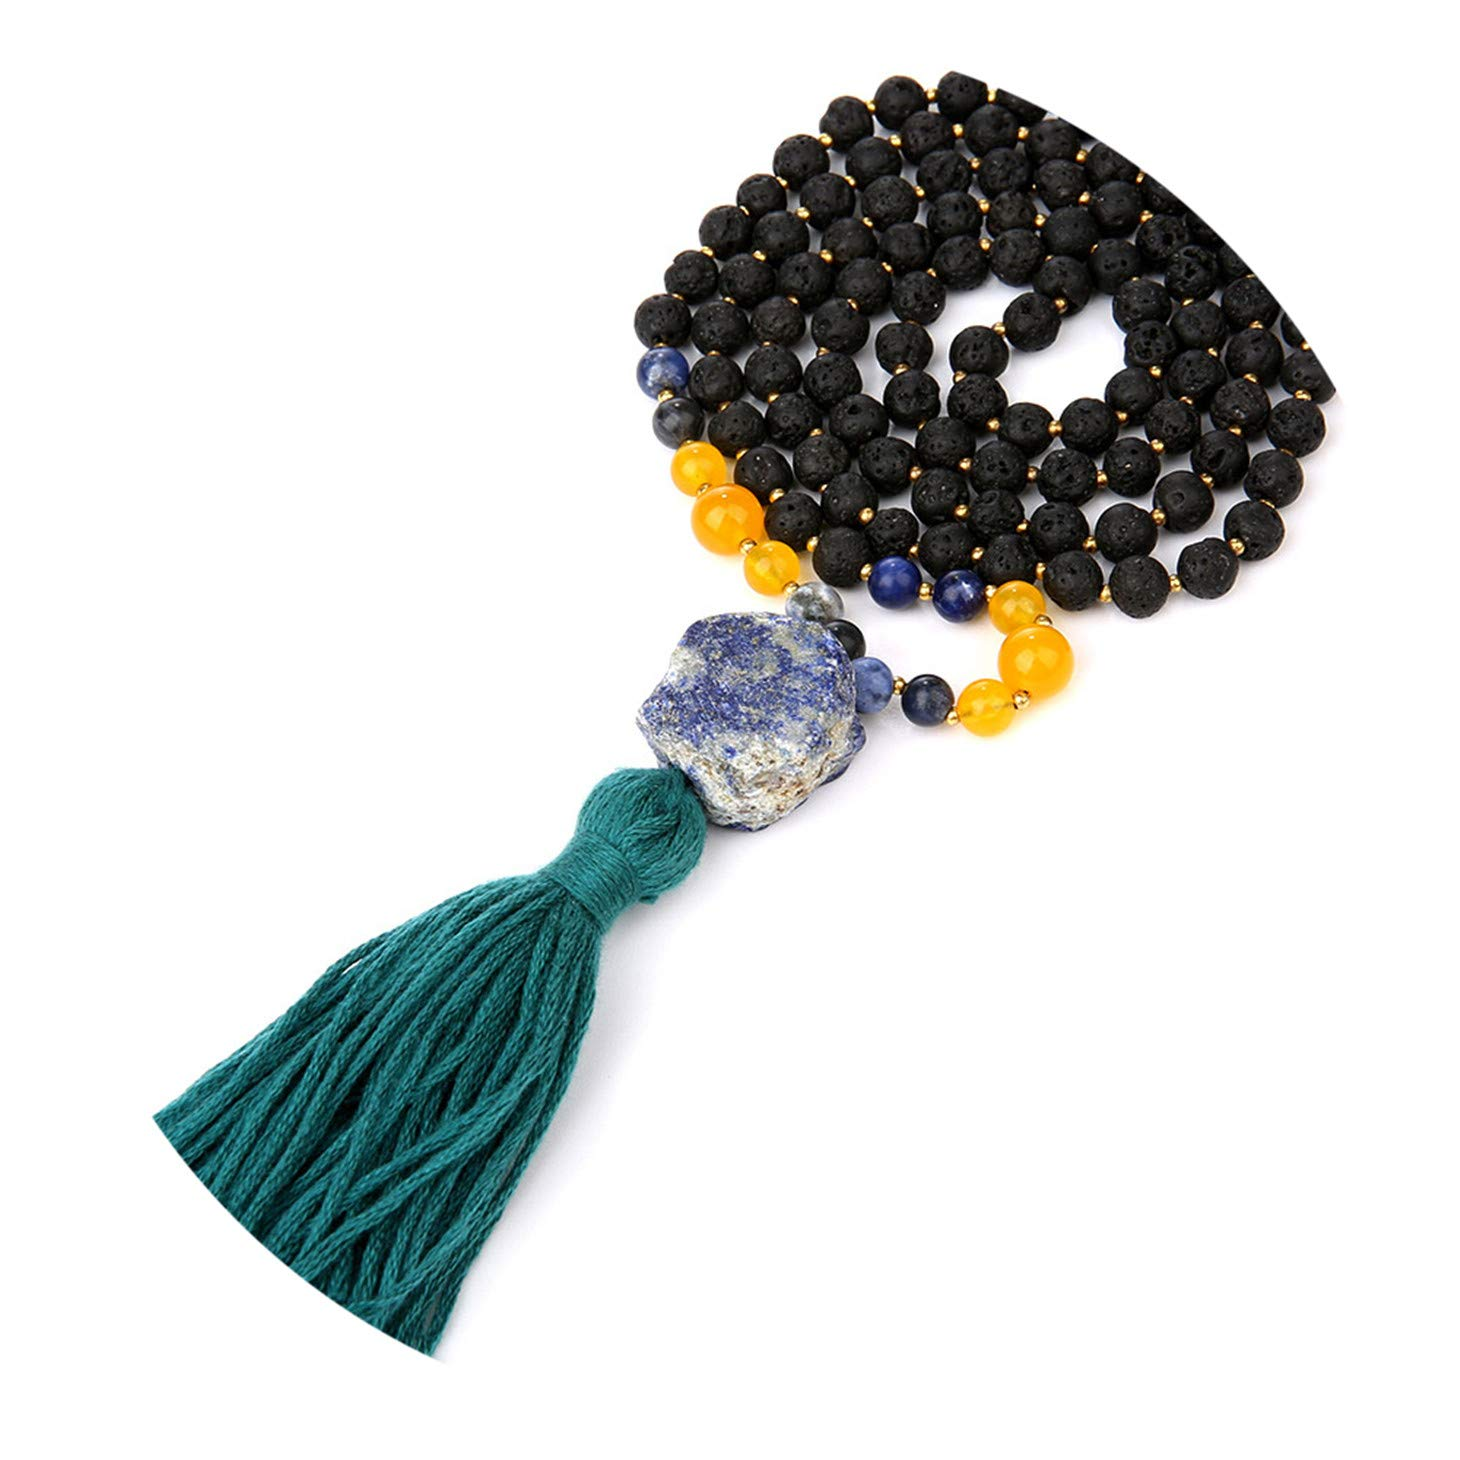 Olive Tayl 108 Mala Beads Necklaces for Women Female Payer Regious Matte Natural Stone Pendant Long Tassel NEC